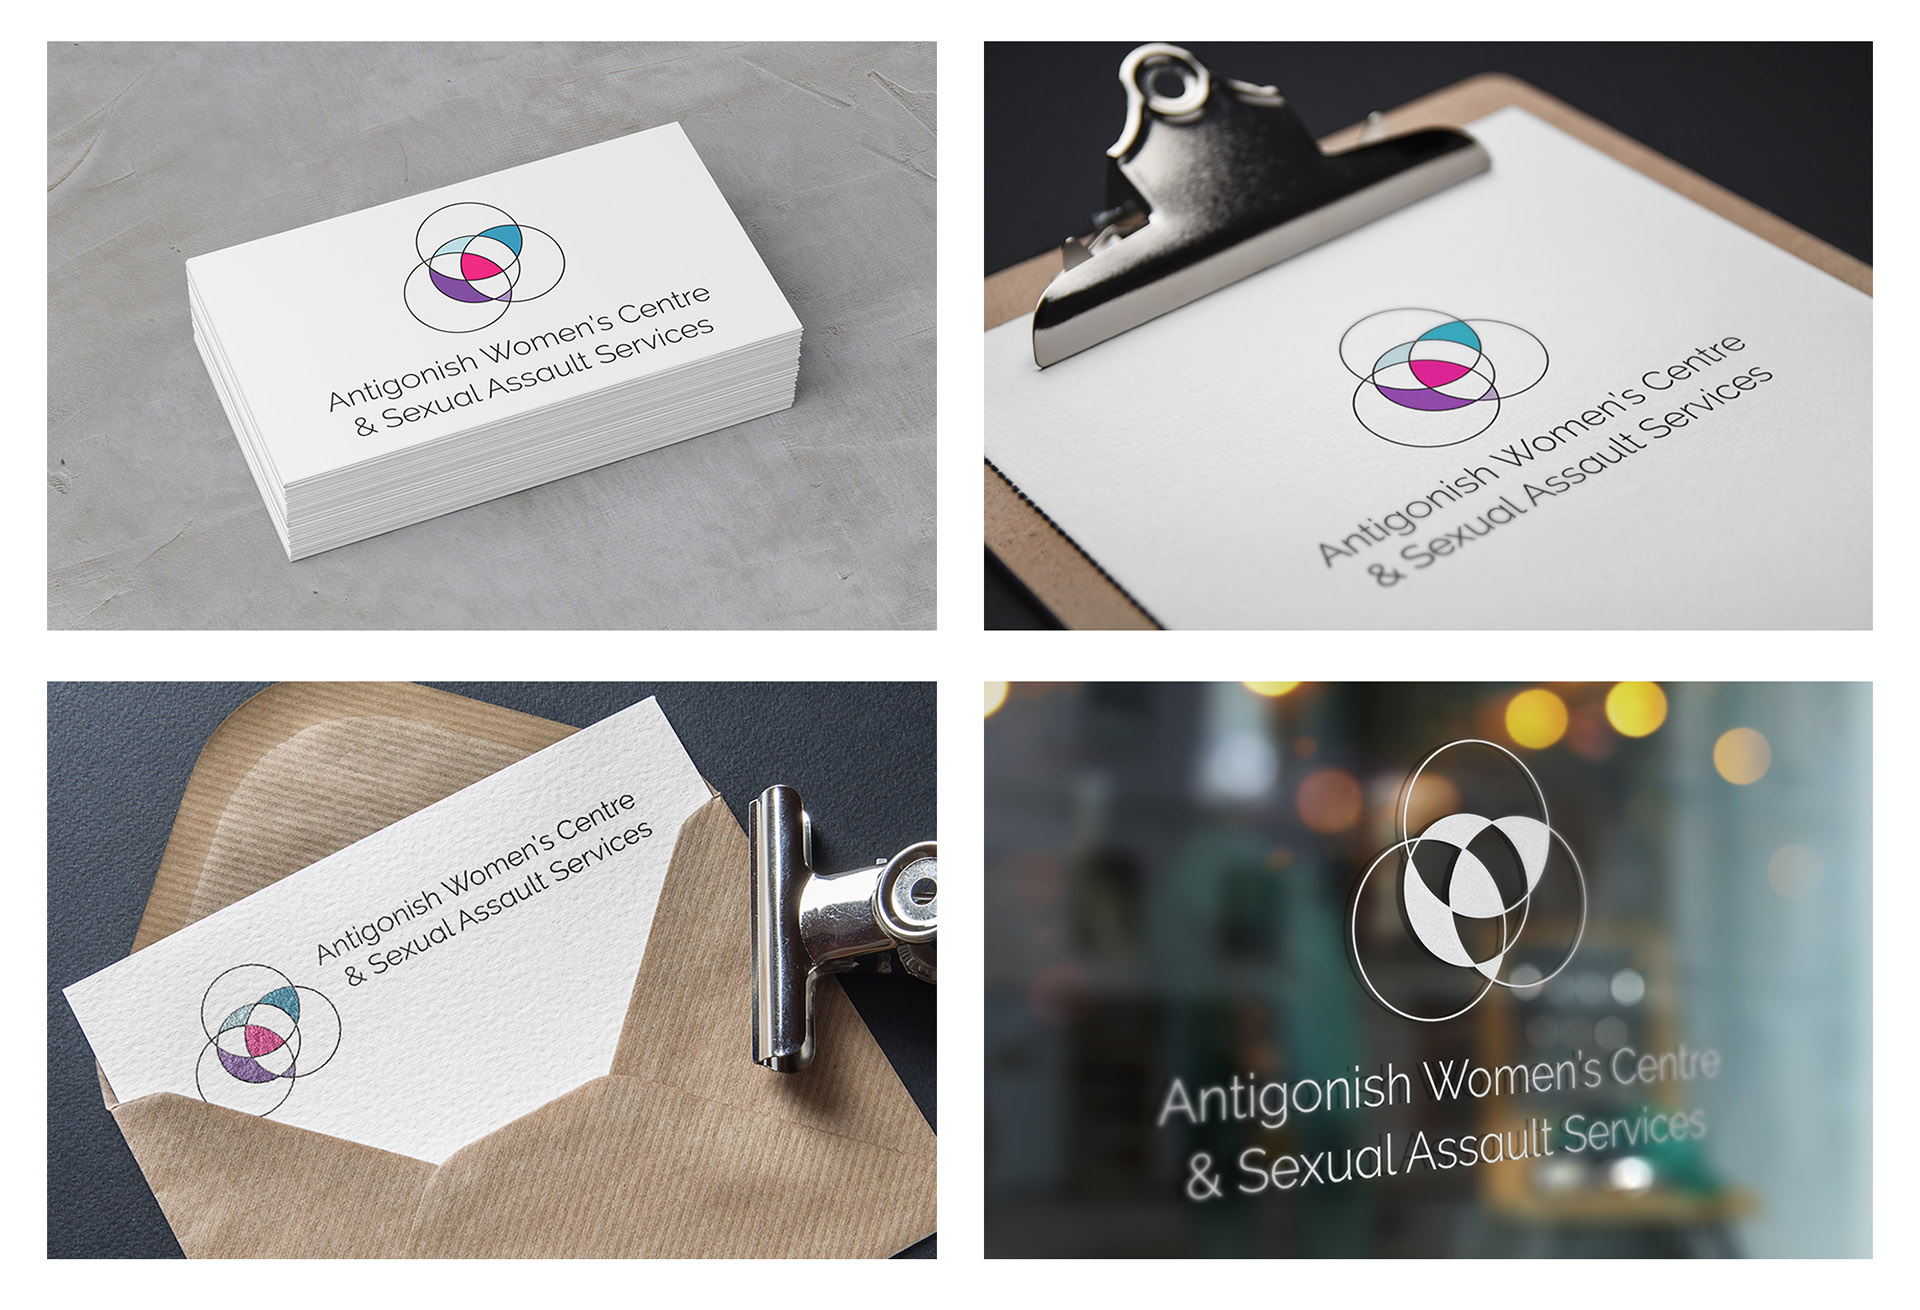 new logo mocked up on business cards, letterhead, correspondence and glass window